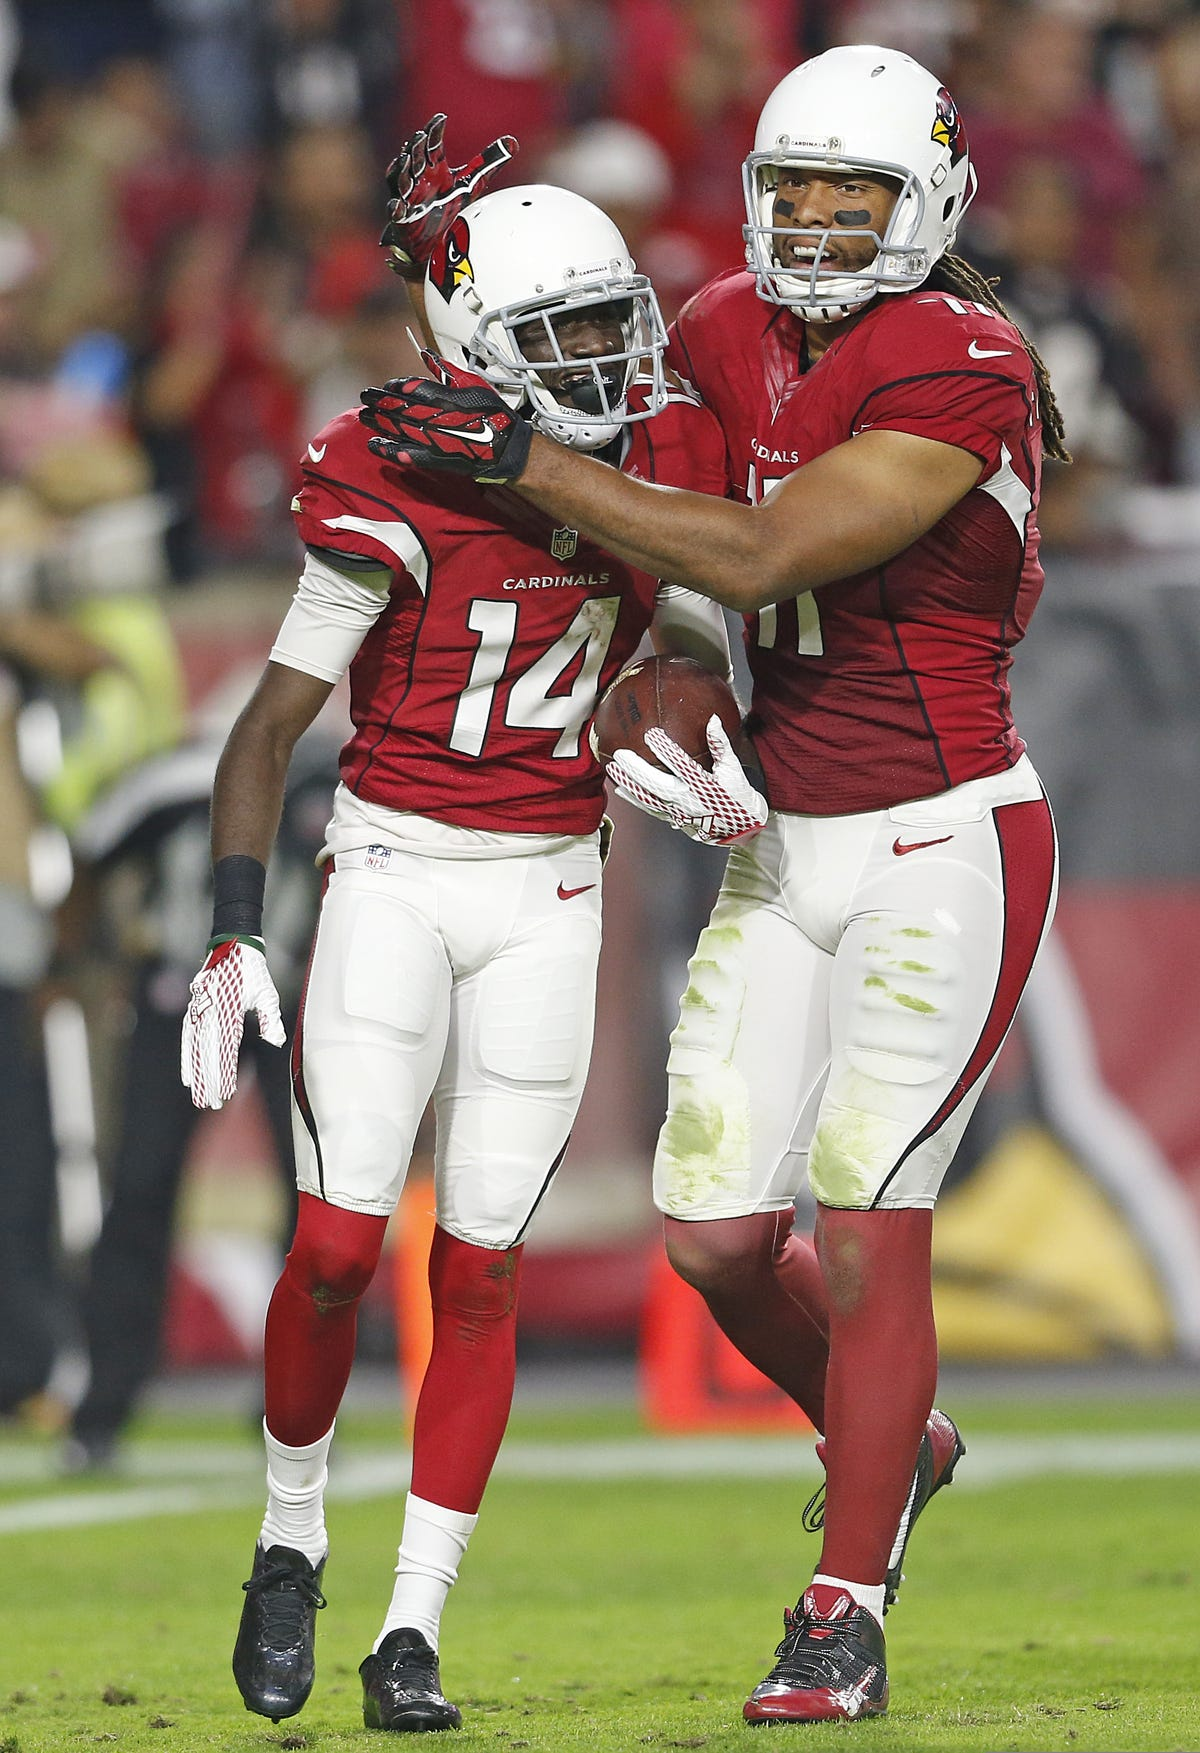 Cardinals secure dramatic victory over Bengals